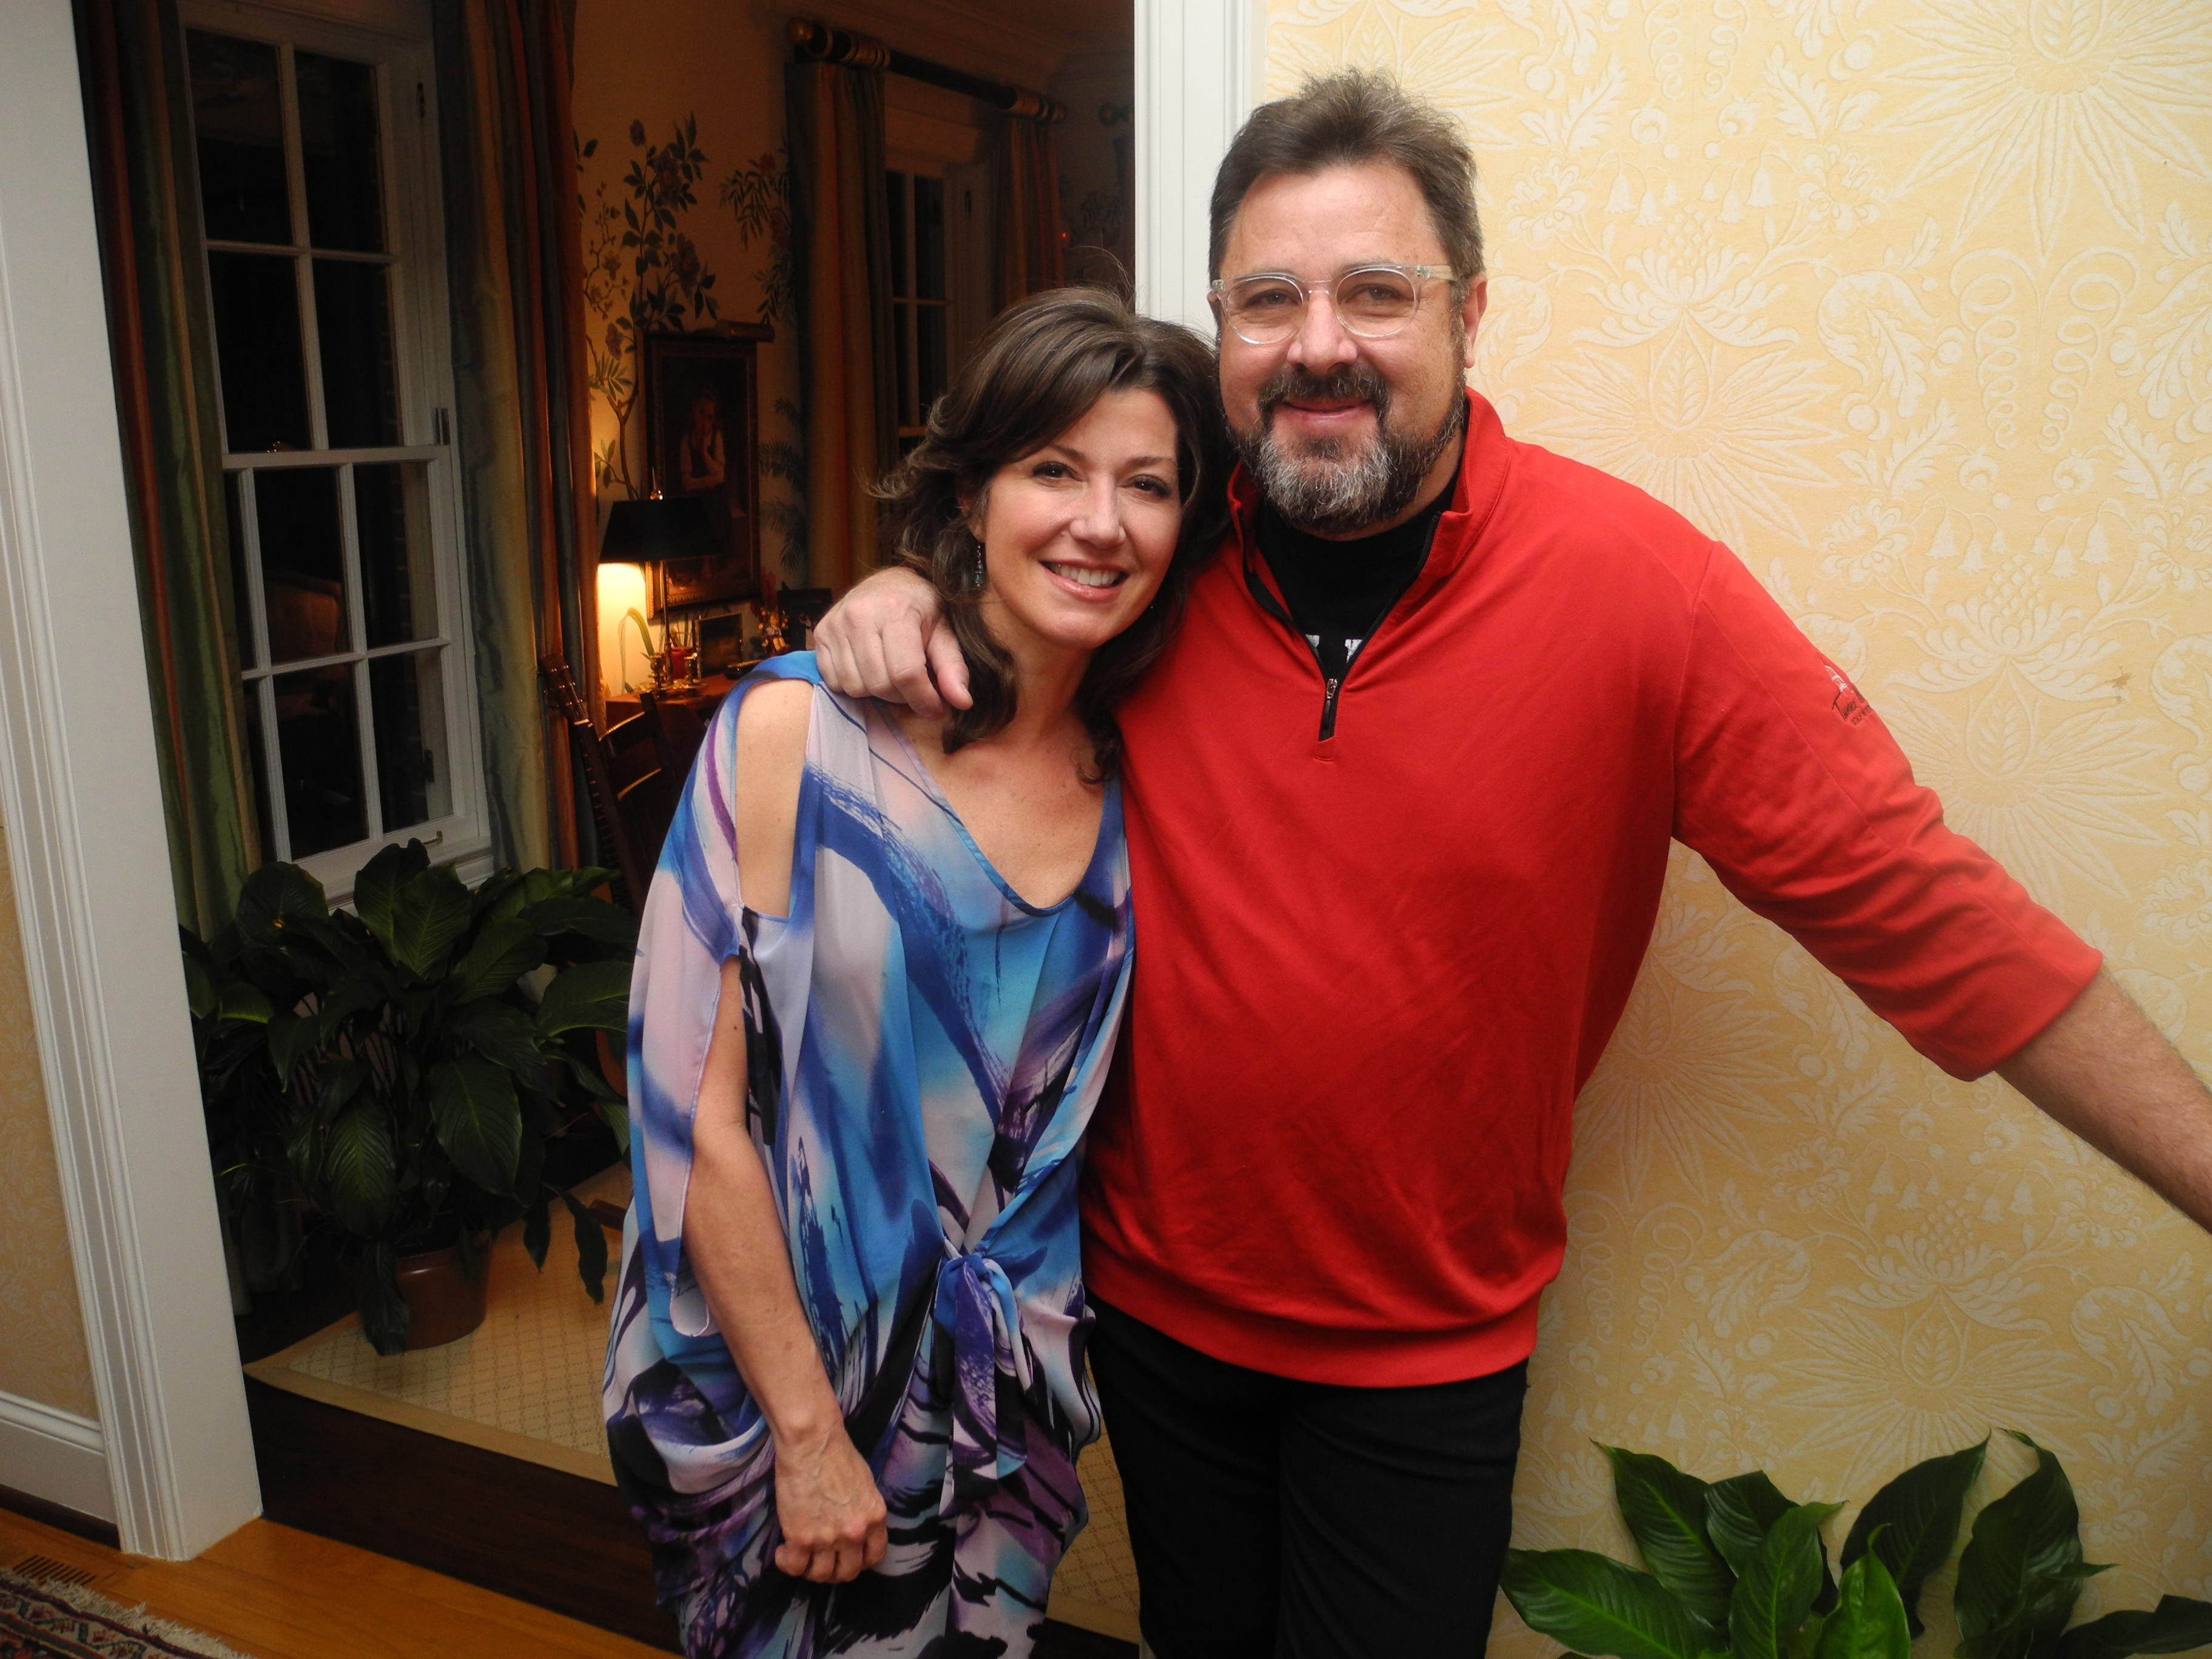 Amy Grant and Vince Gill in 2014.